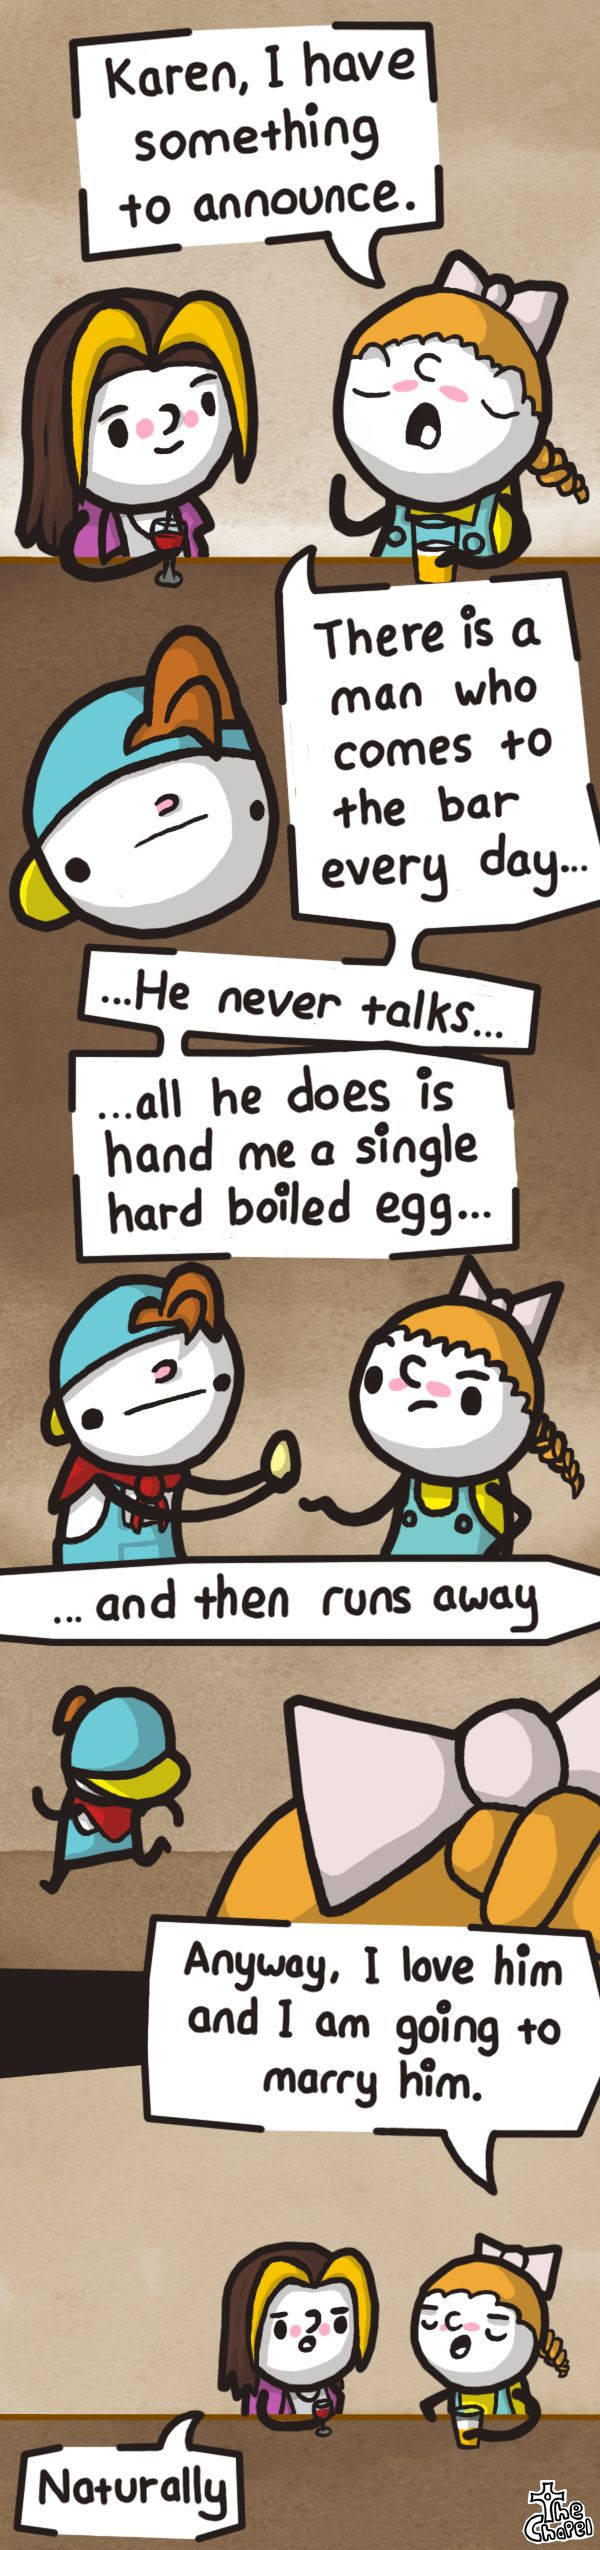 Harvest Moon logic this made me laugh